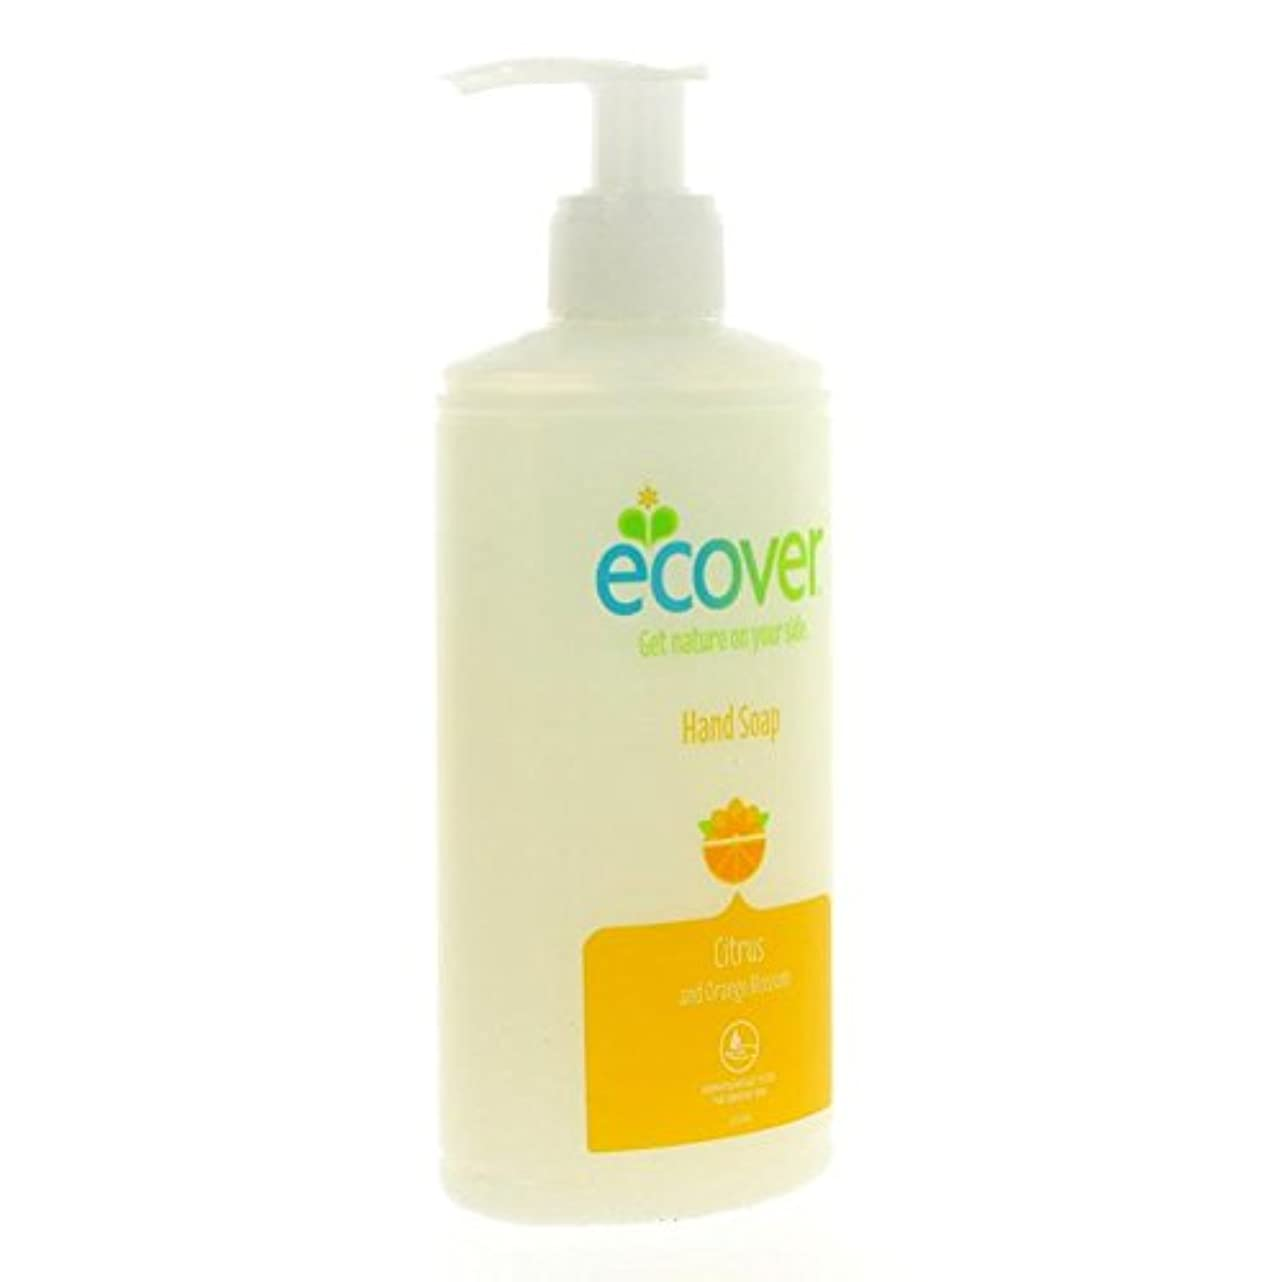 登録するとんでもない魅惑的なEcover - Hand Soap - Citrus and Orange Blossom - 250ml (Case of 6)